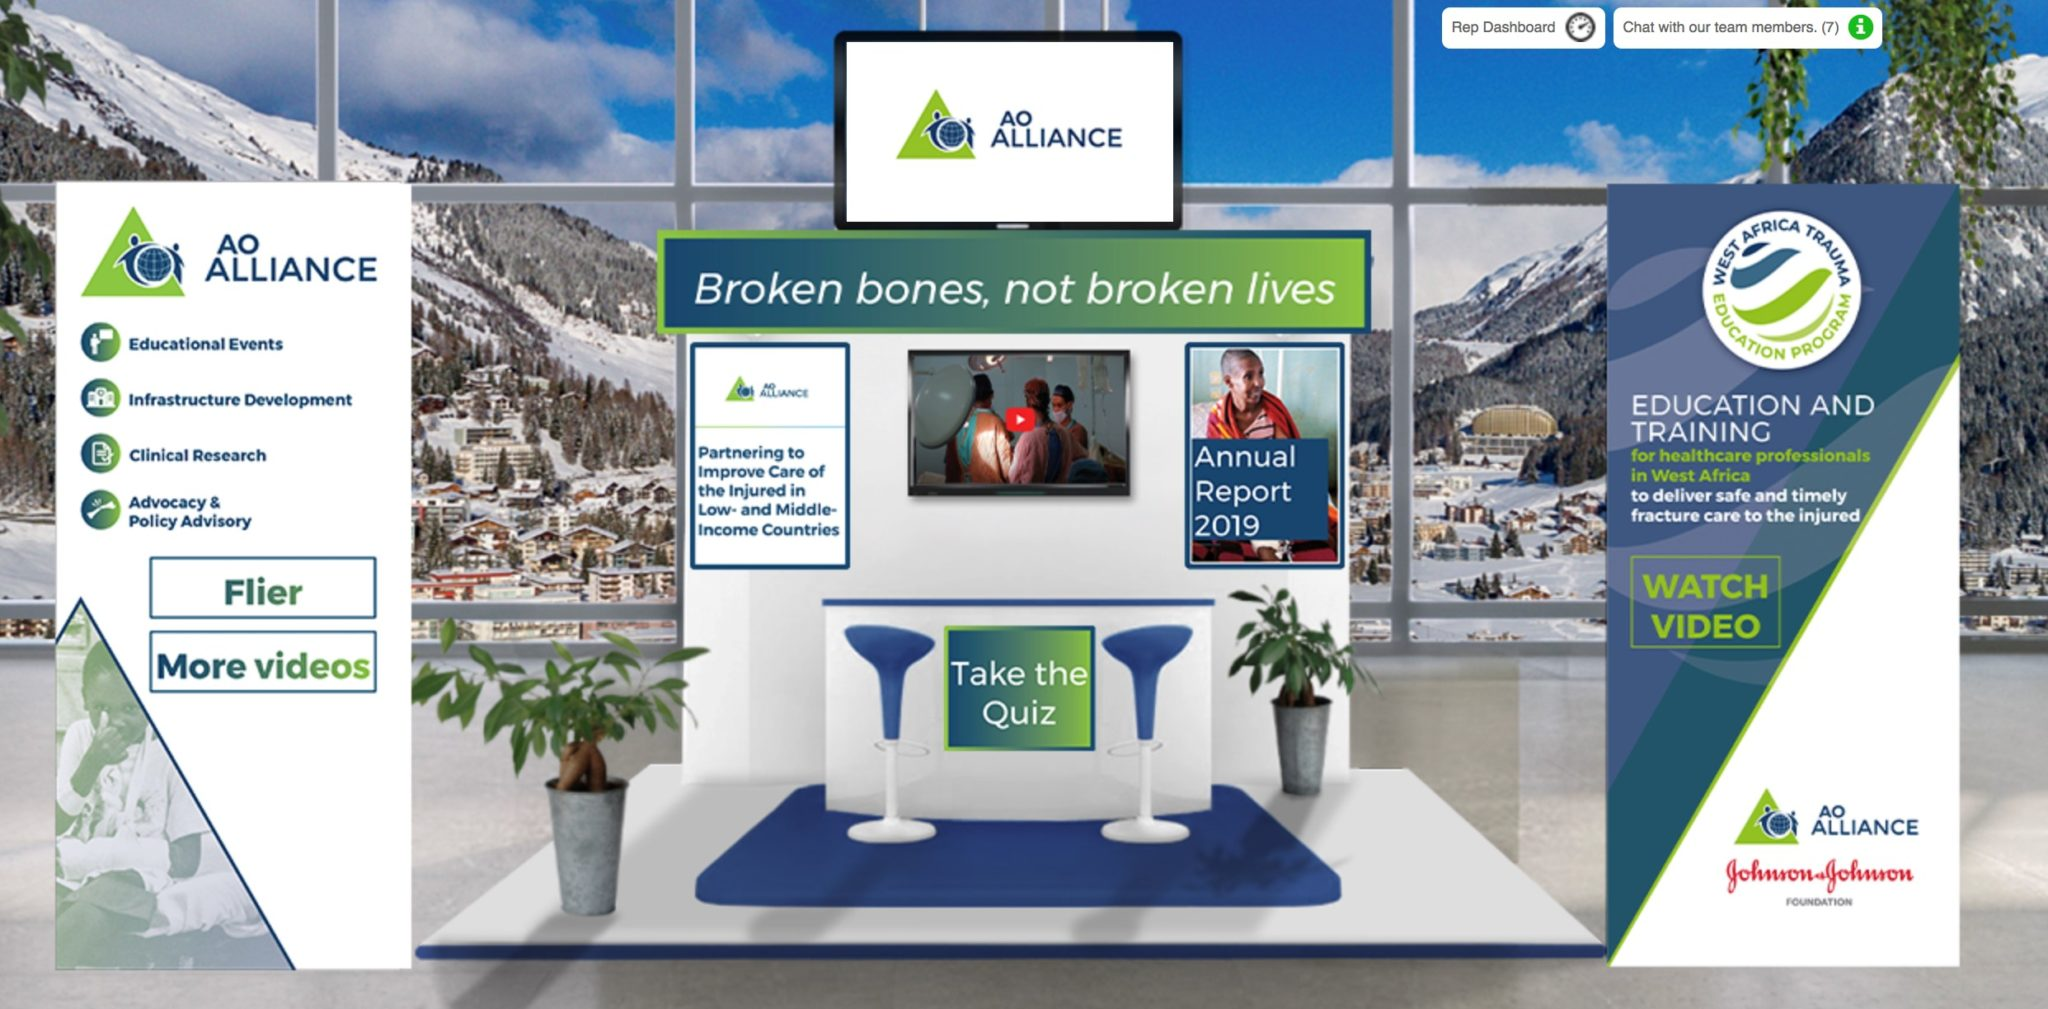 AO Alliance at the virtual edition of the AO Davos Courses 2020